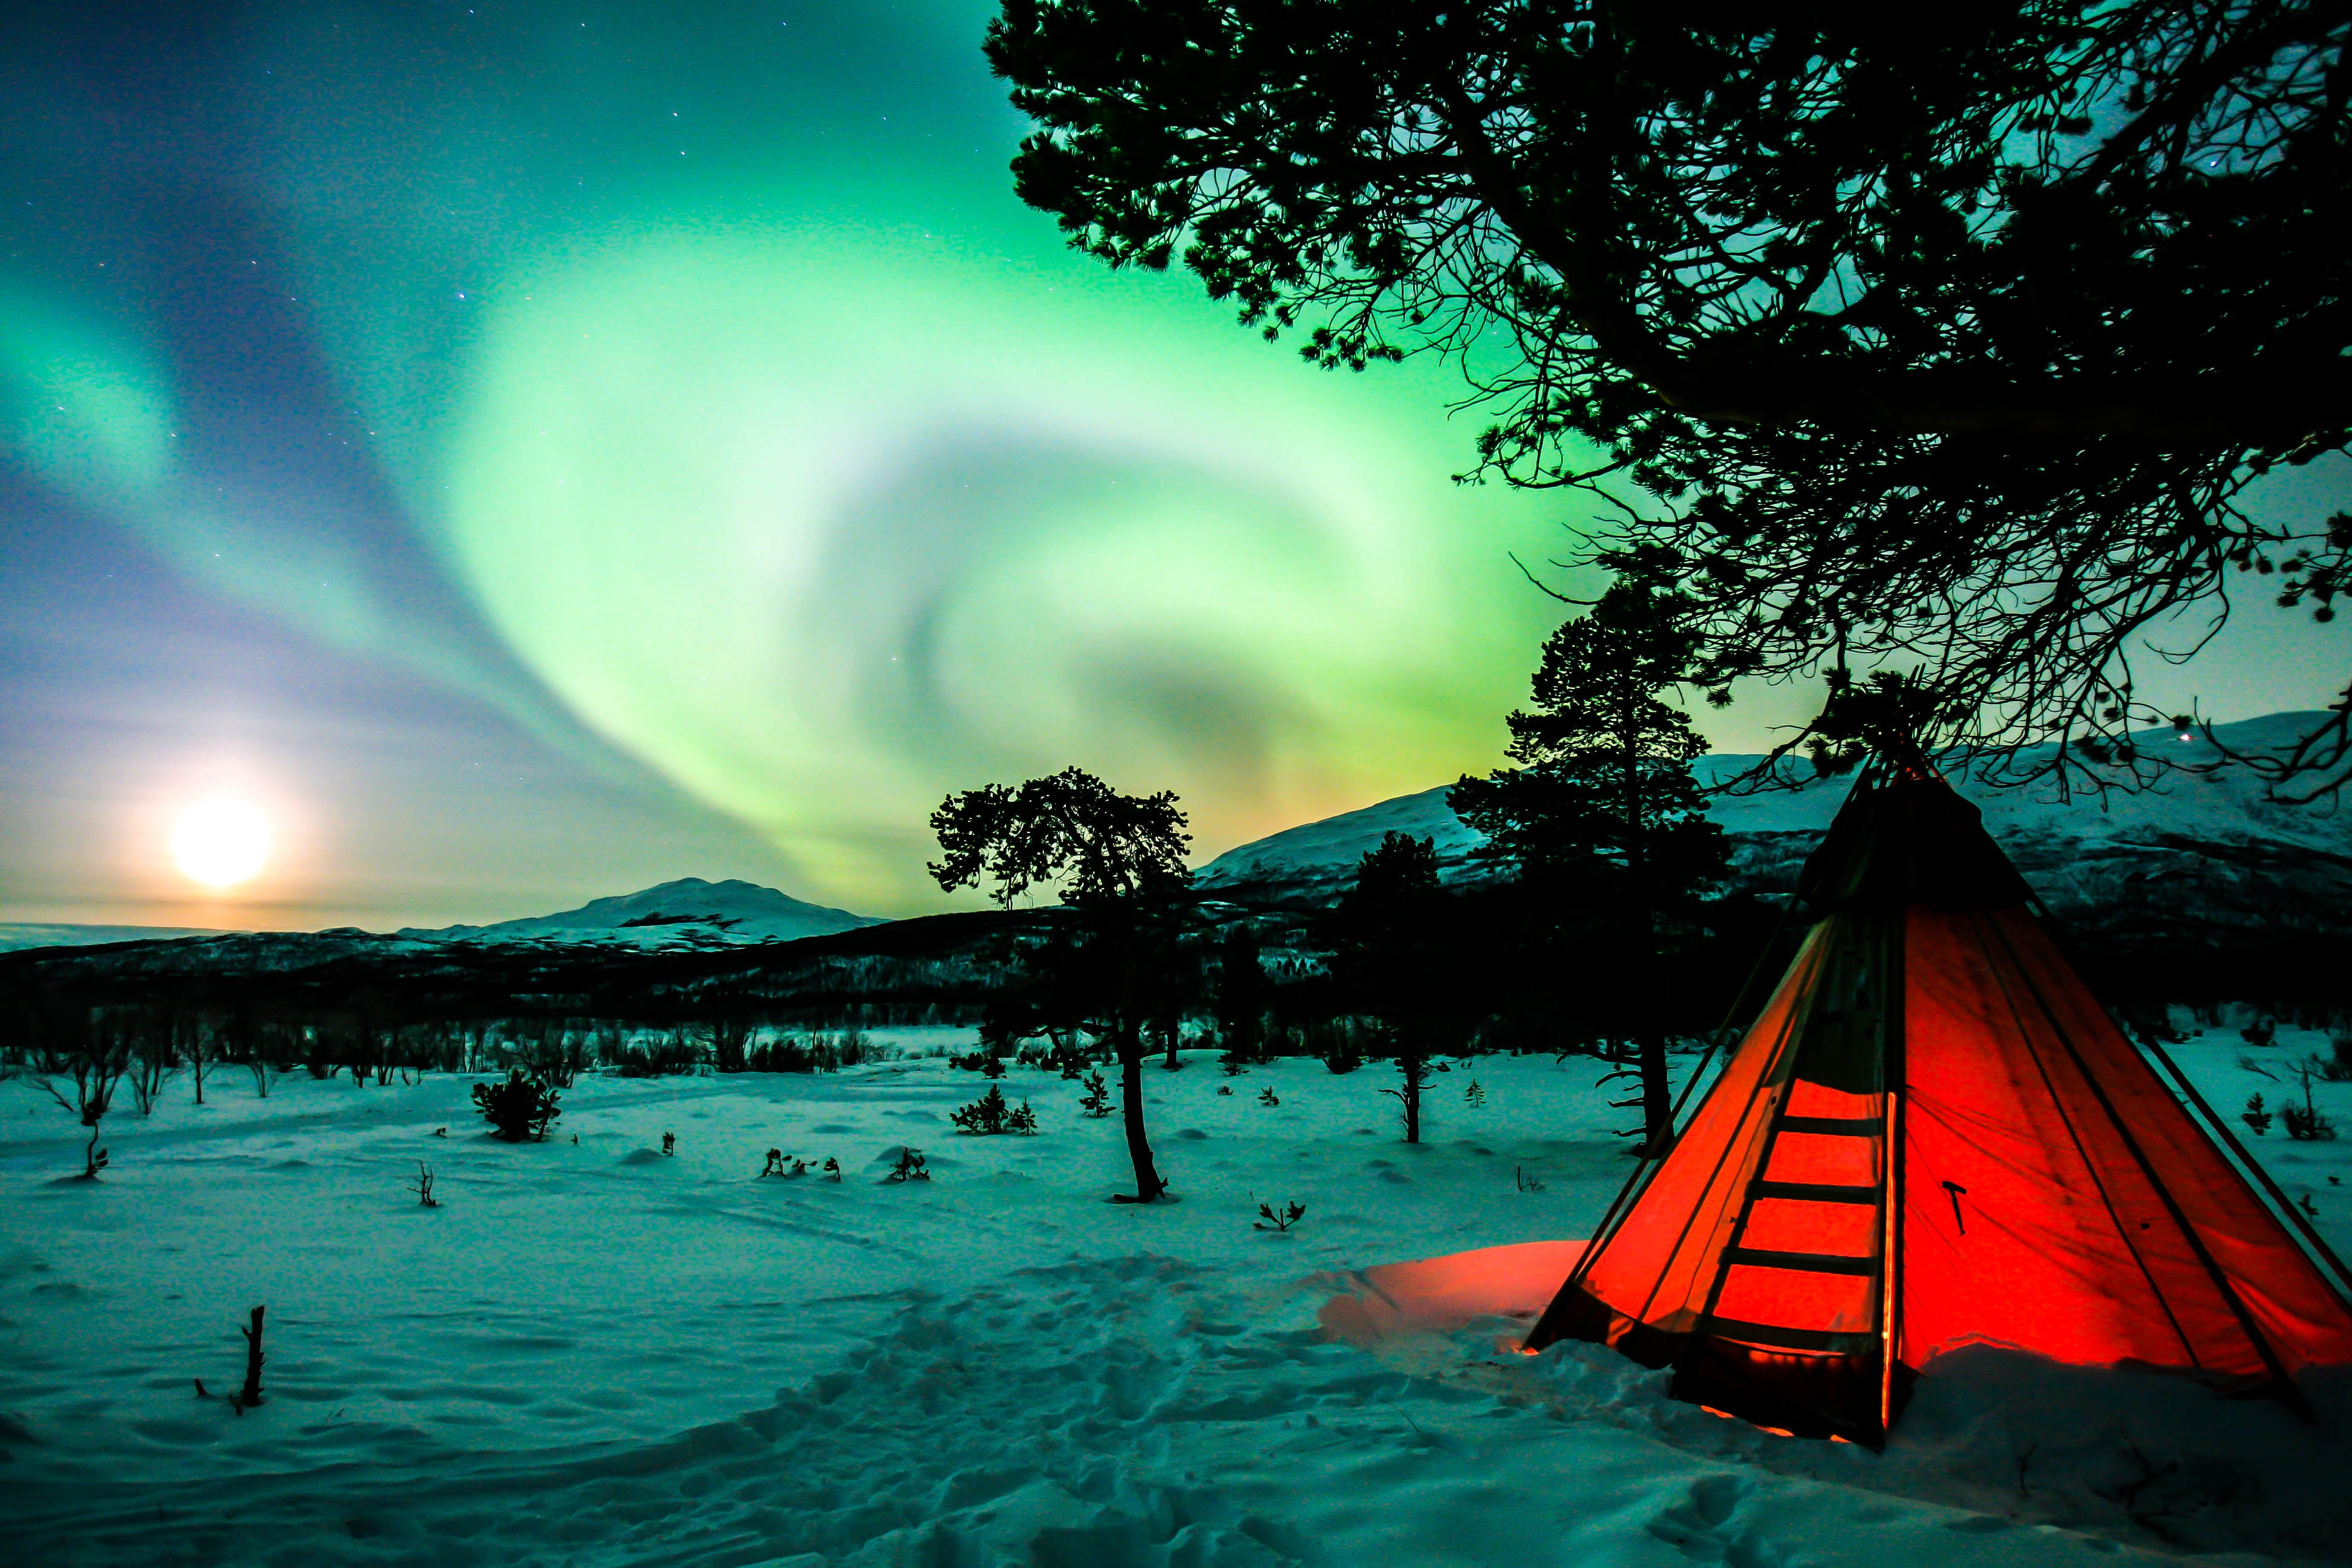 122040 download wallpaper Winter, Night, Dark, Northern Lights, Aurora Borealis, Tent, Camping, Campsite screensavers and pictures for free